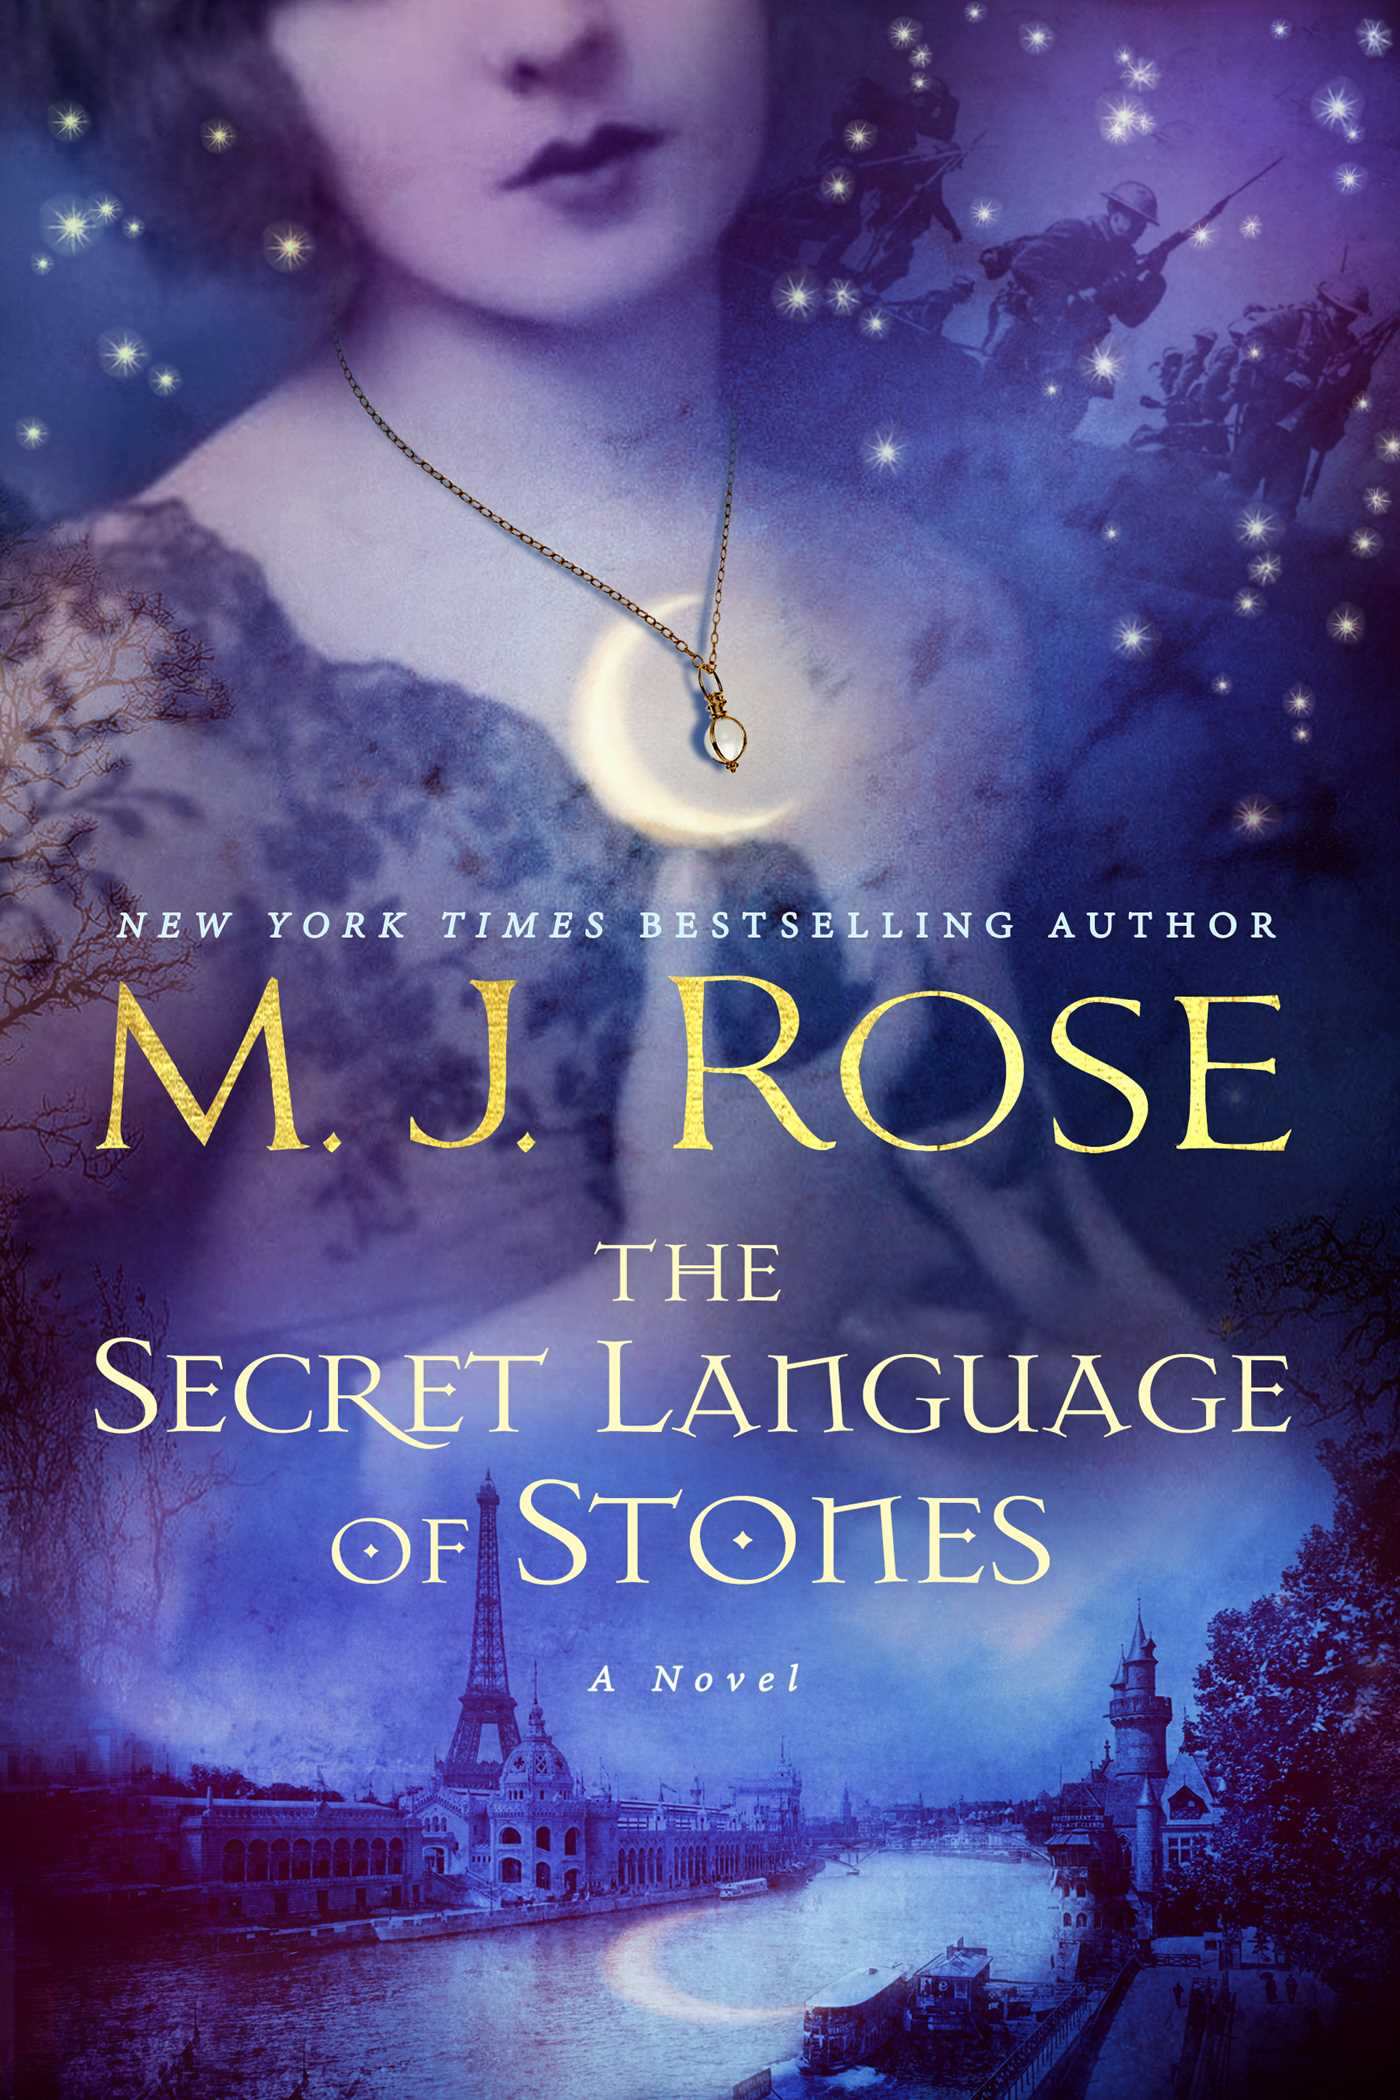 REVIEW: The Secret Language of Stones by M.J. Rose